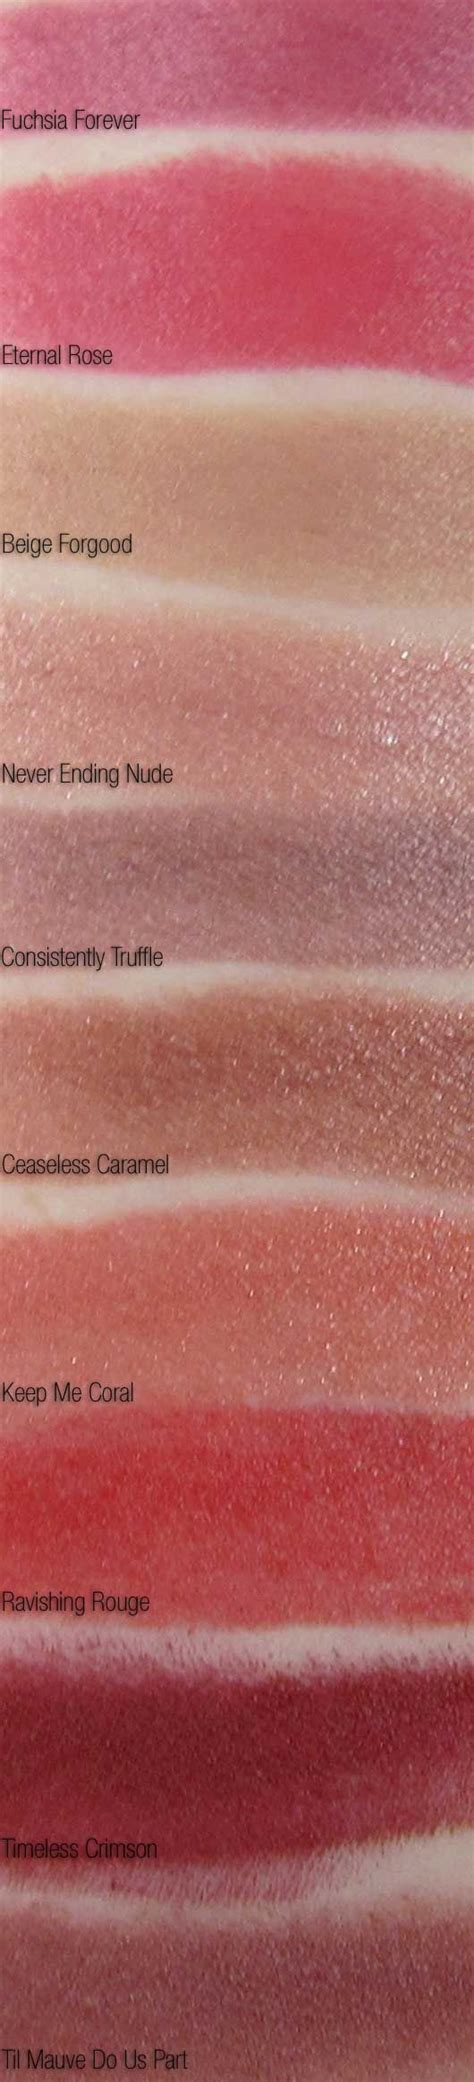 Maybelline Superstay 14hr Lipstick review swatches maybelline superstay 14hr lipstick